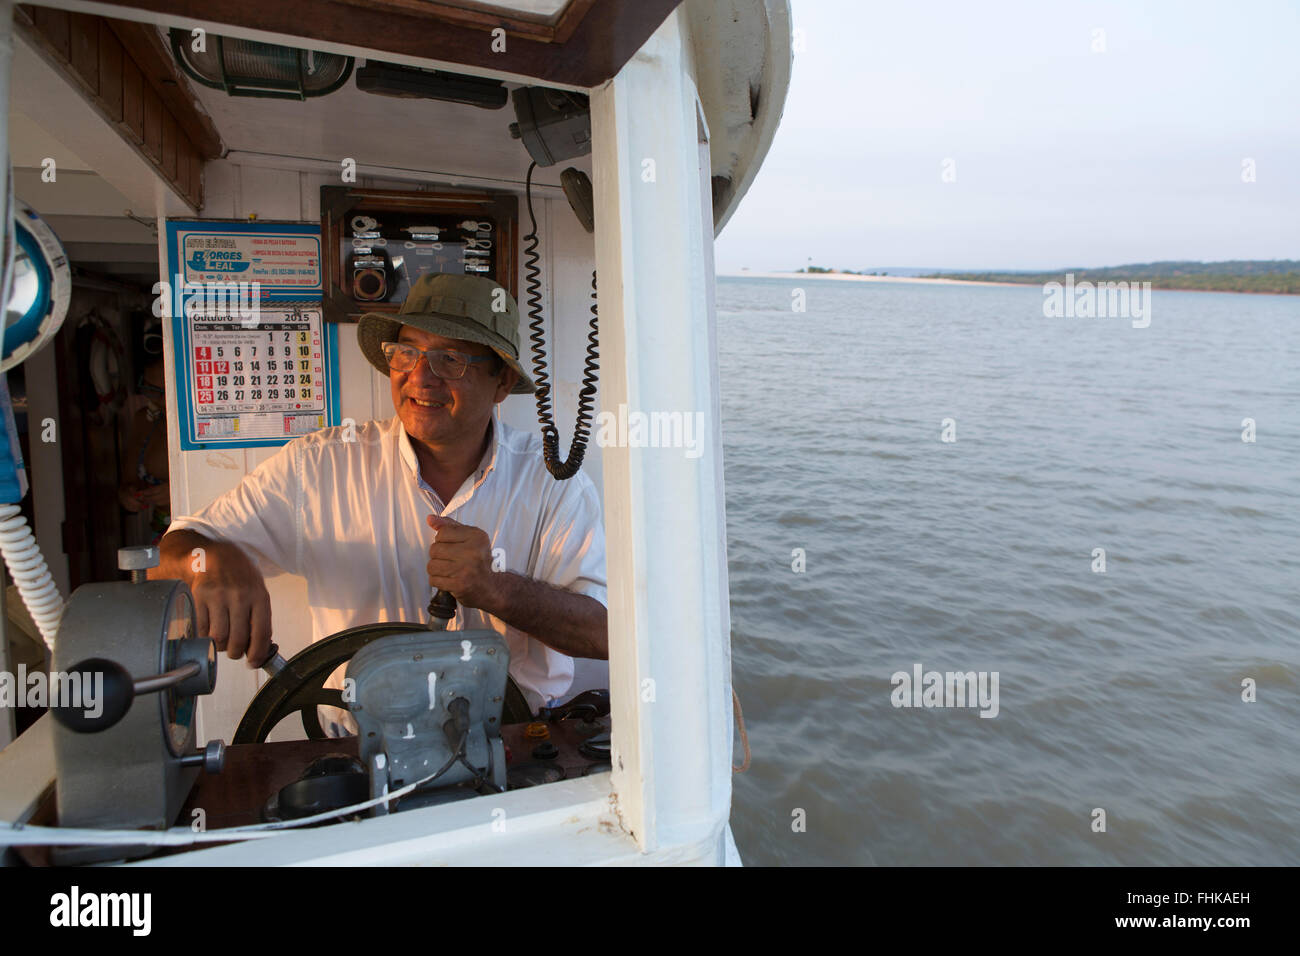 Idelfonso Taketomi of Vento em Popa tourism in his Amazon river boat on the Tapajos river - Stock Image